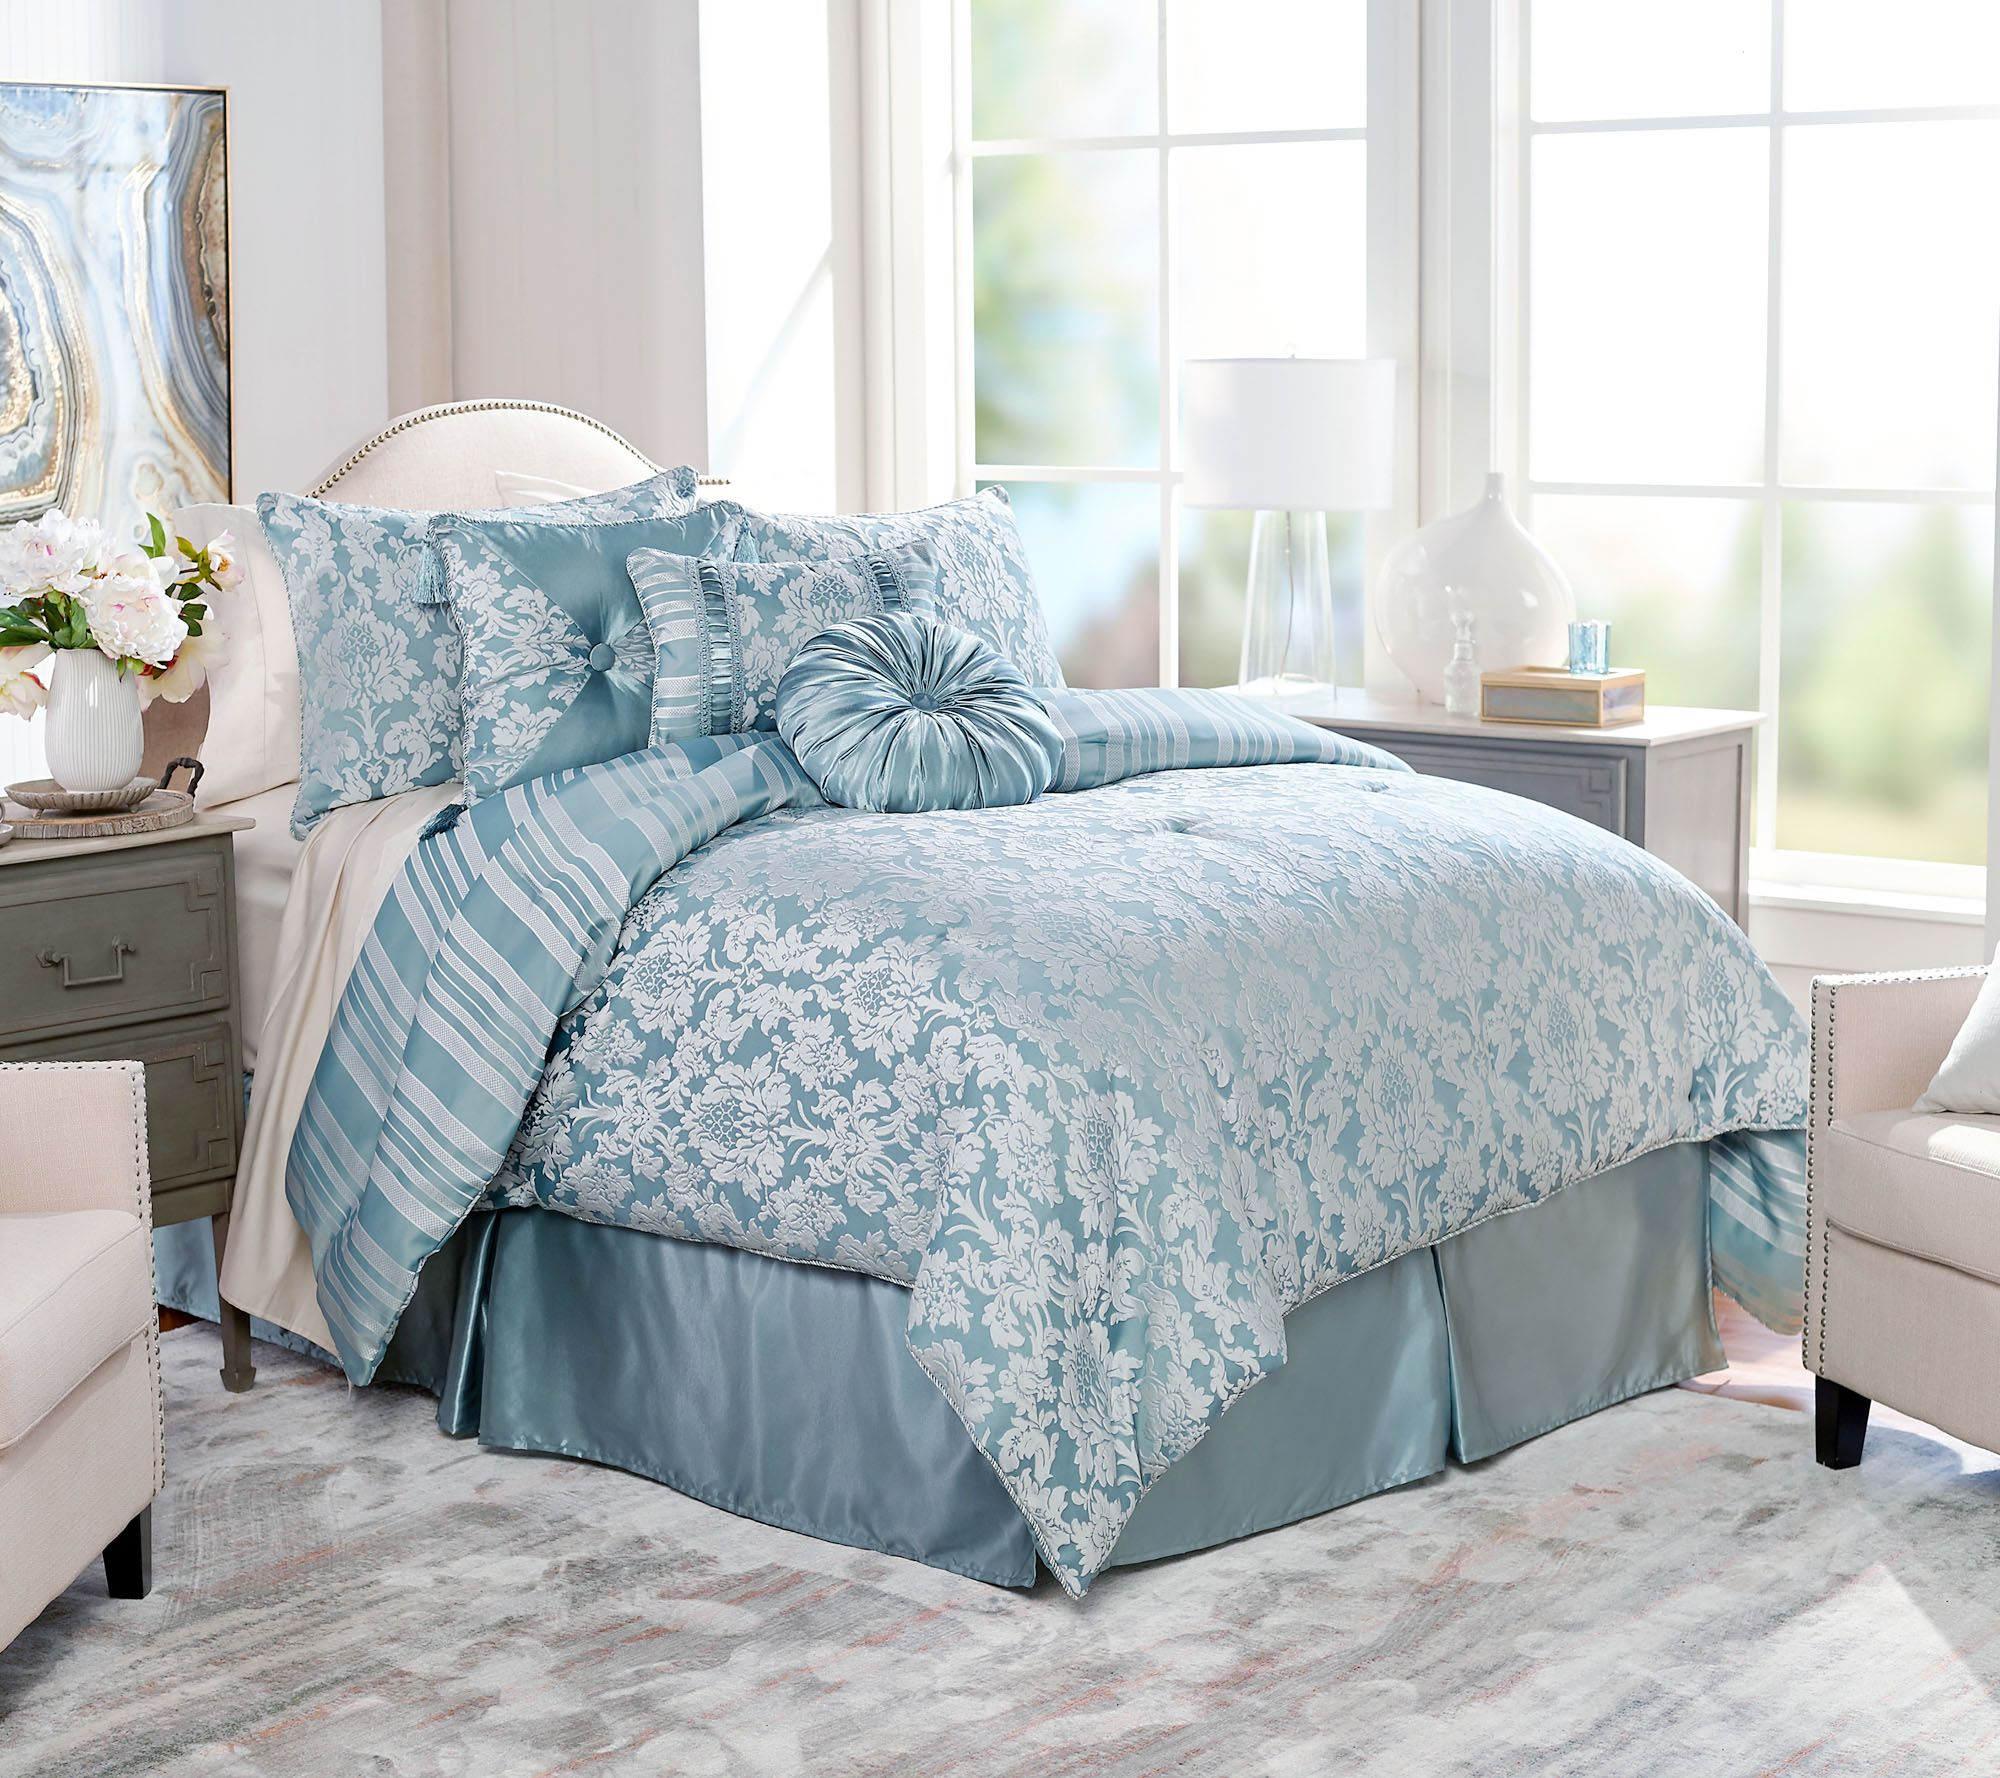 Northern Nights Jacquard Reversible 7 Piece King Comforter